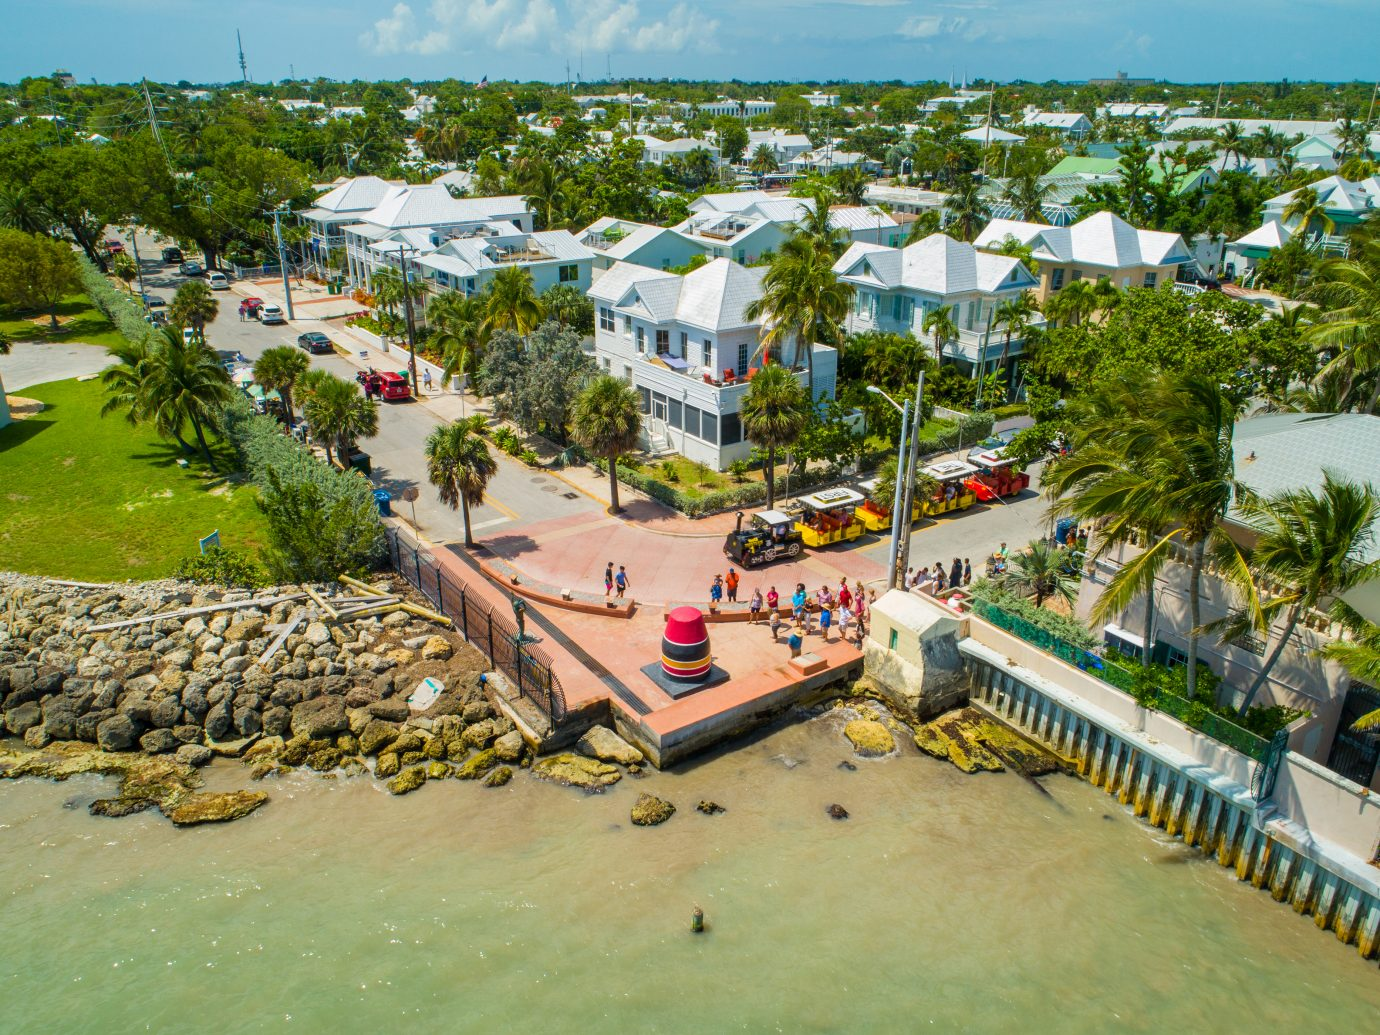 Aerial drone photo of scenic Key West Florida USA